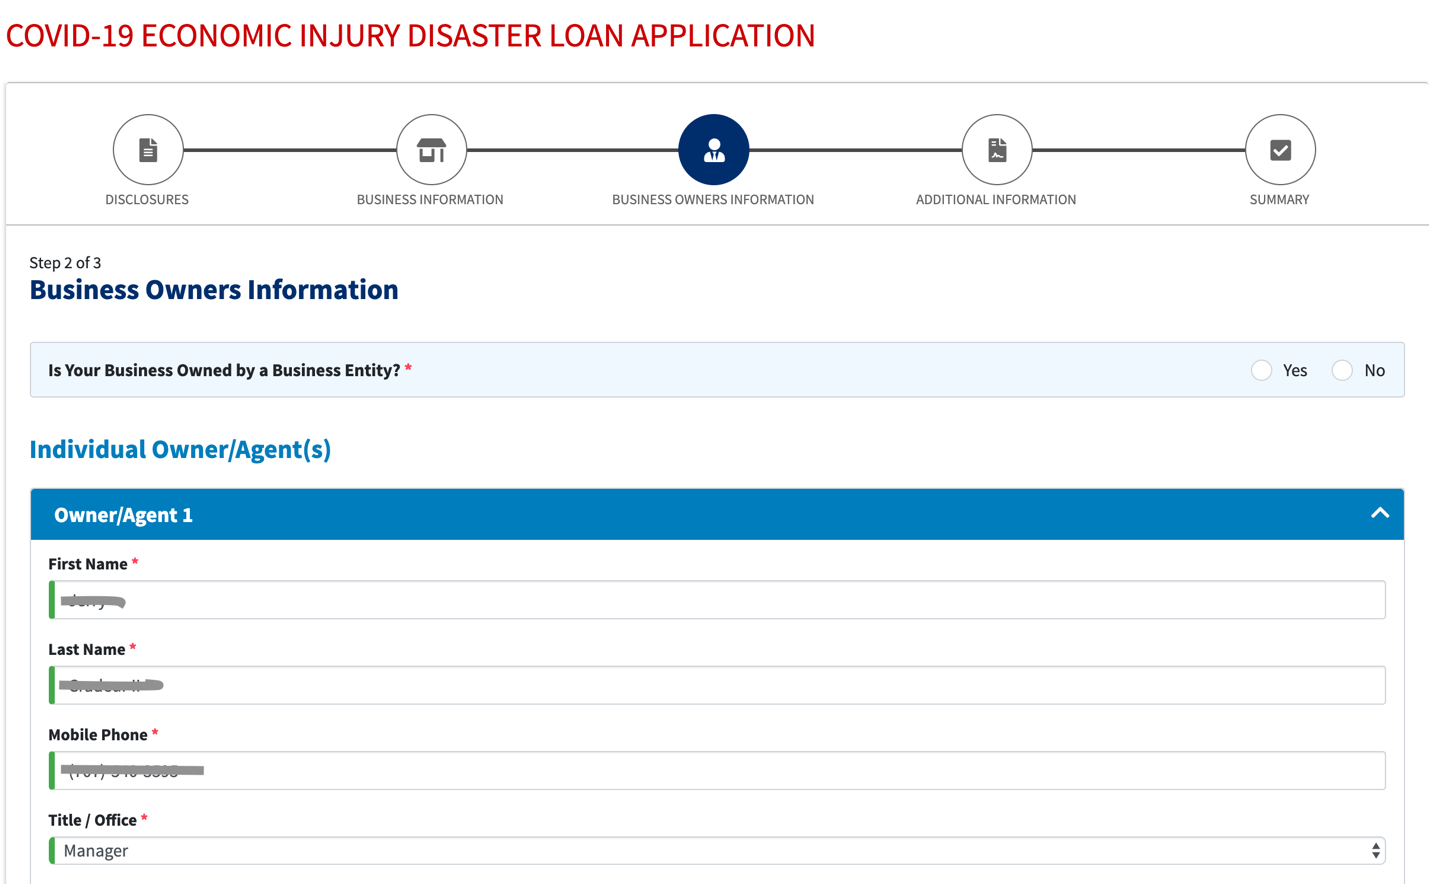 applying for the Economic Injury Disaster Loan program